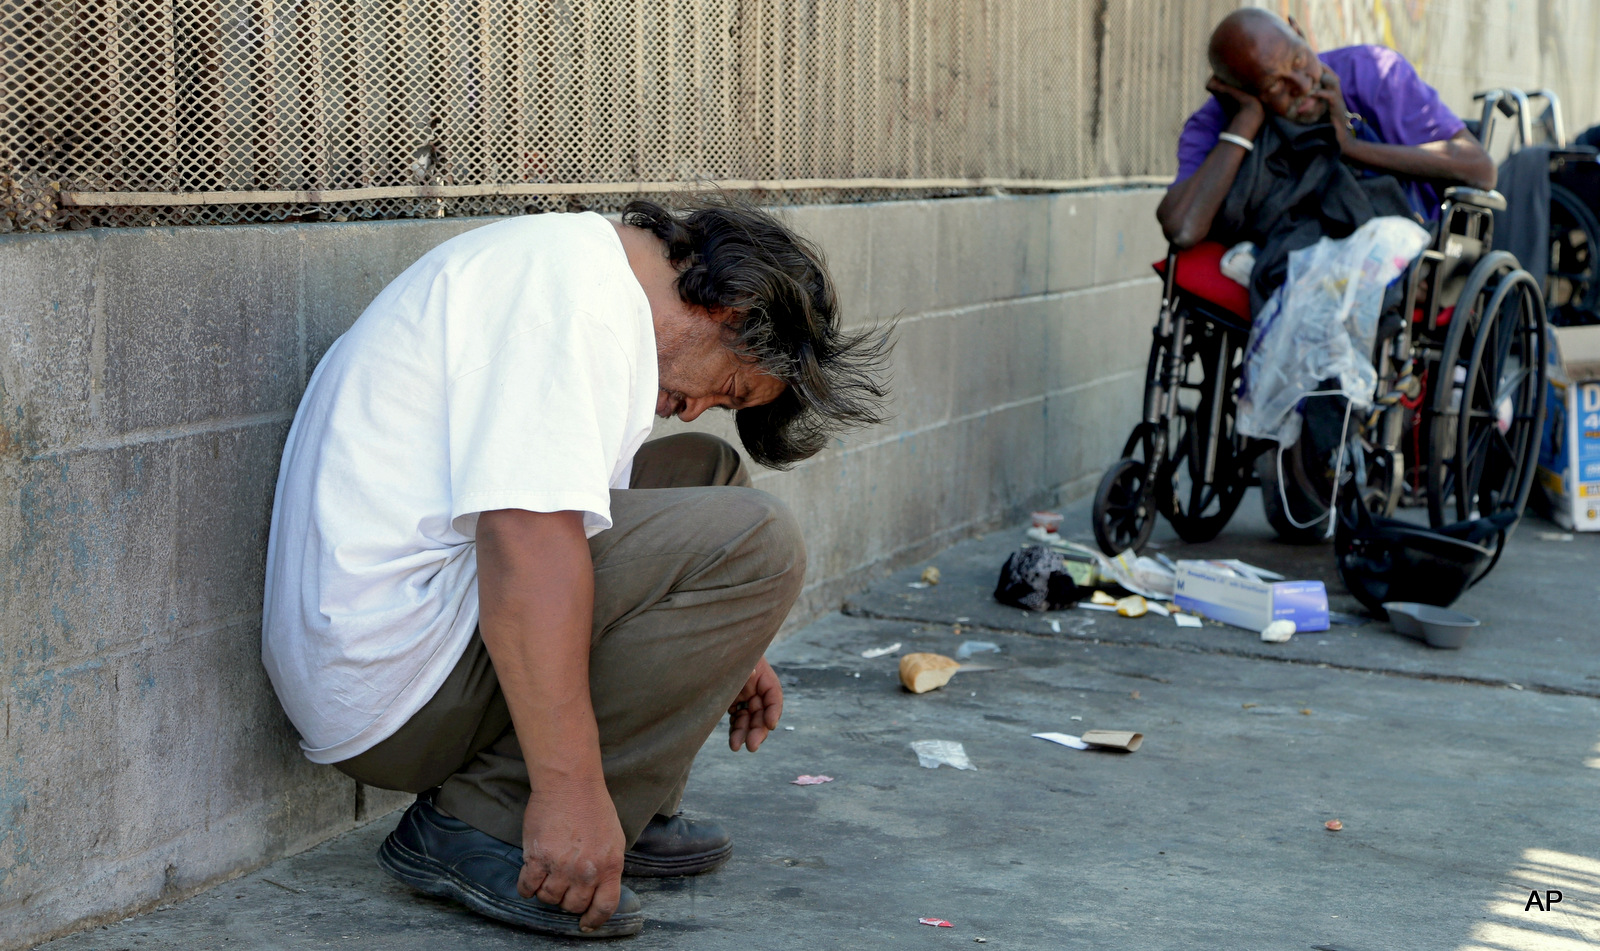 Homeless people rest in the Skid Row section of Los Angeles, Friday, Aug. 19, 2016.